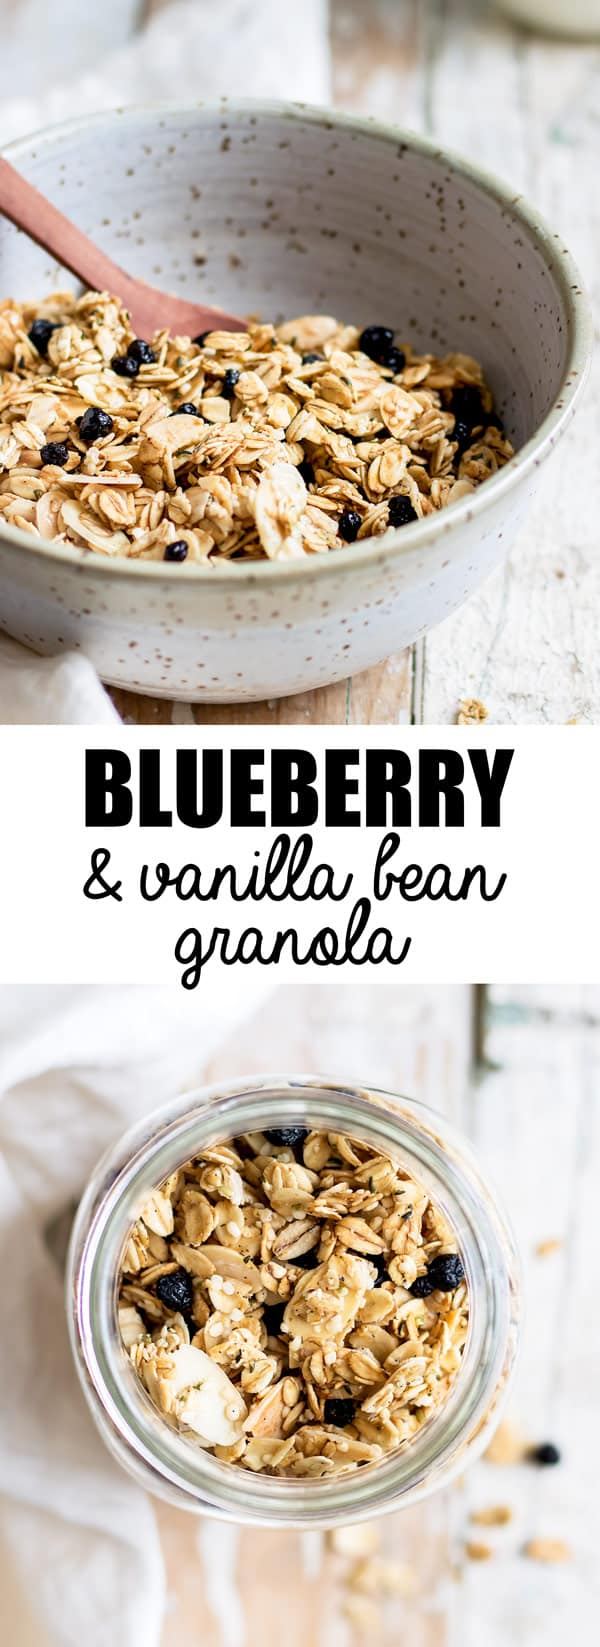 This blueberry, maple & vanilla bean granola is a healthy recipe that is so easy to make and is refined-sugar free!